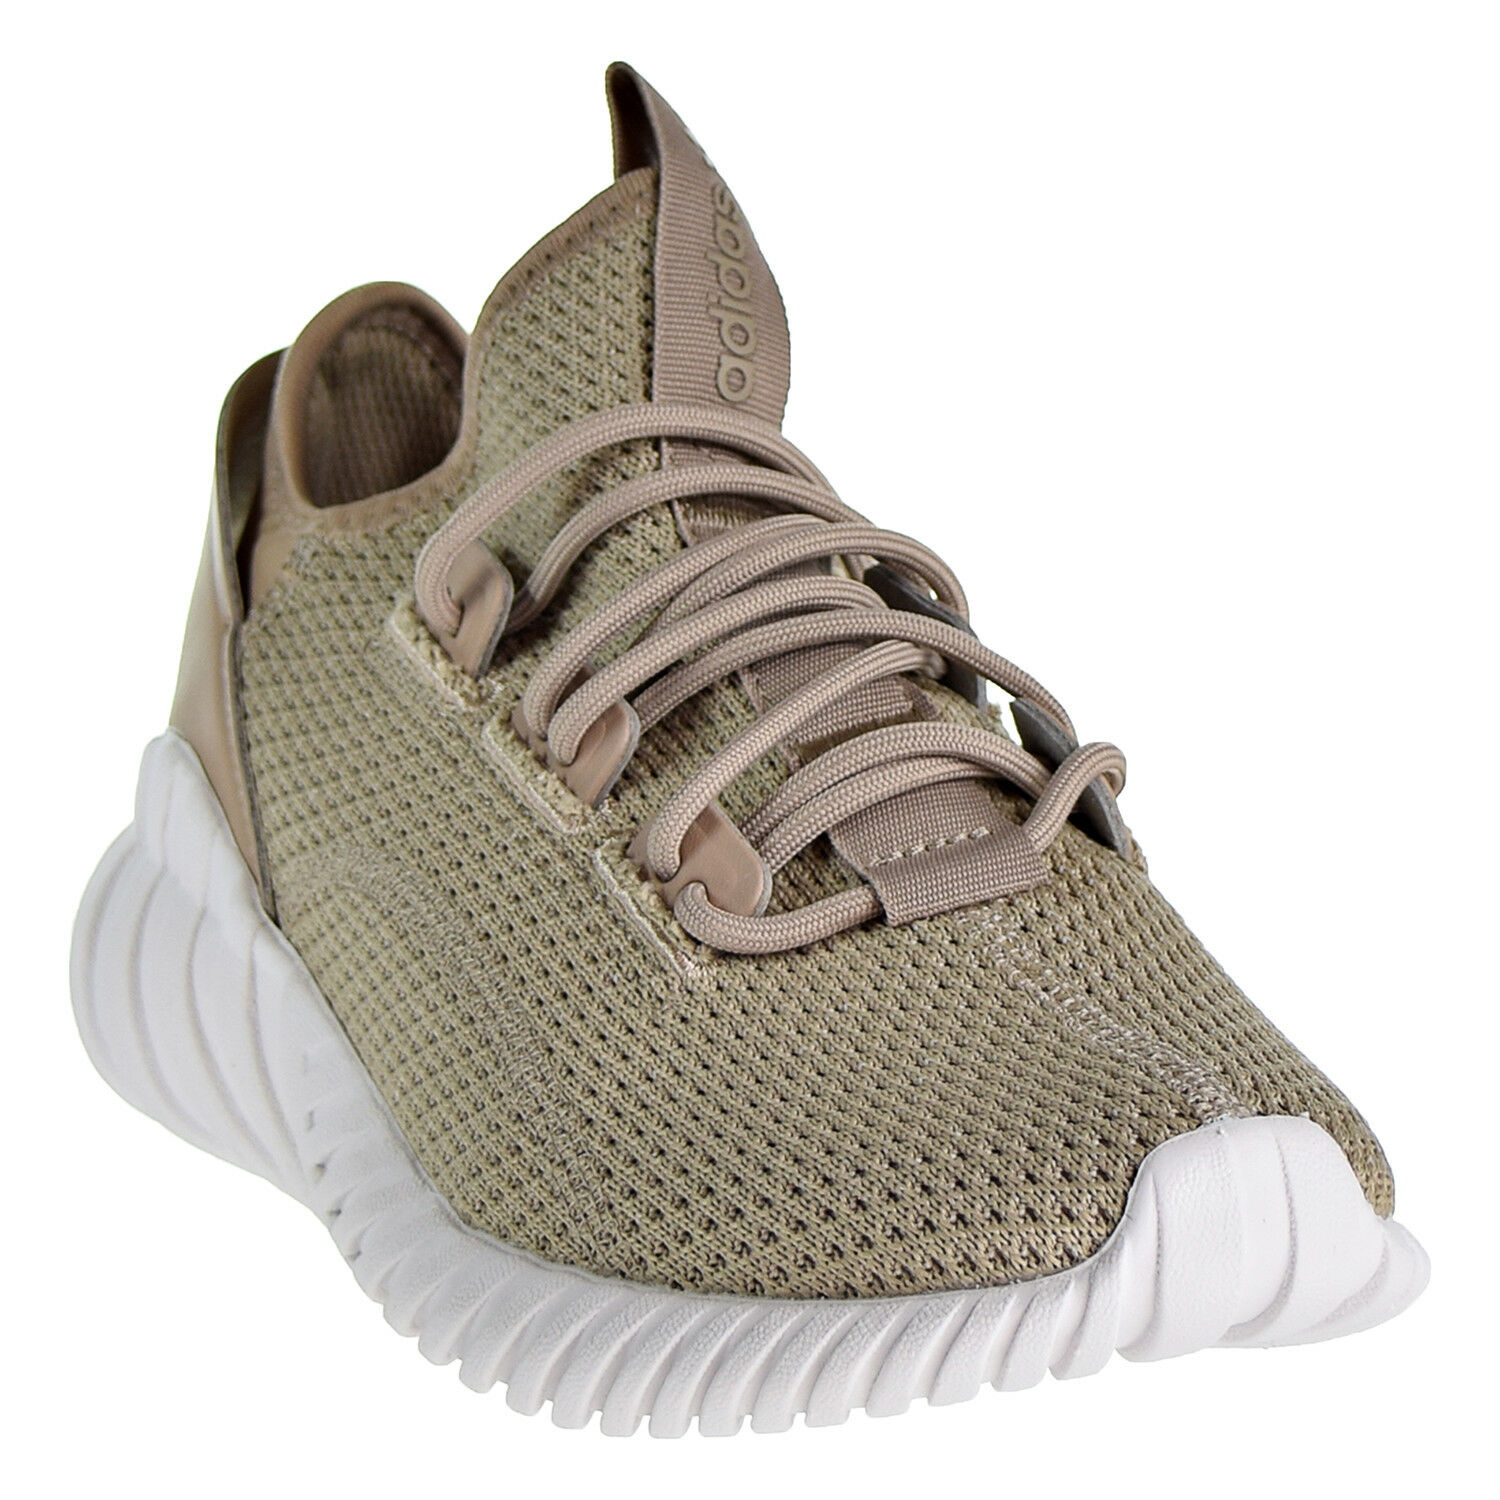 Adidas Originals Tubular Doom Sock Primeknit Boys Sneaker Shoes Tra Khaki BZ0331